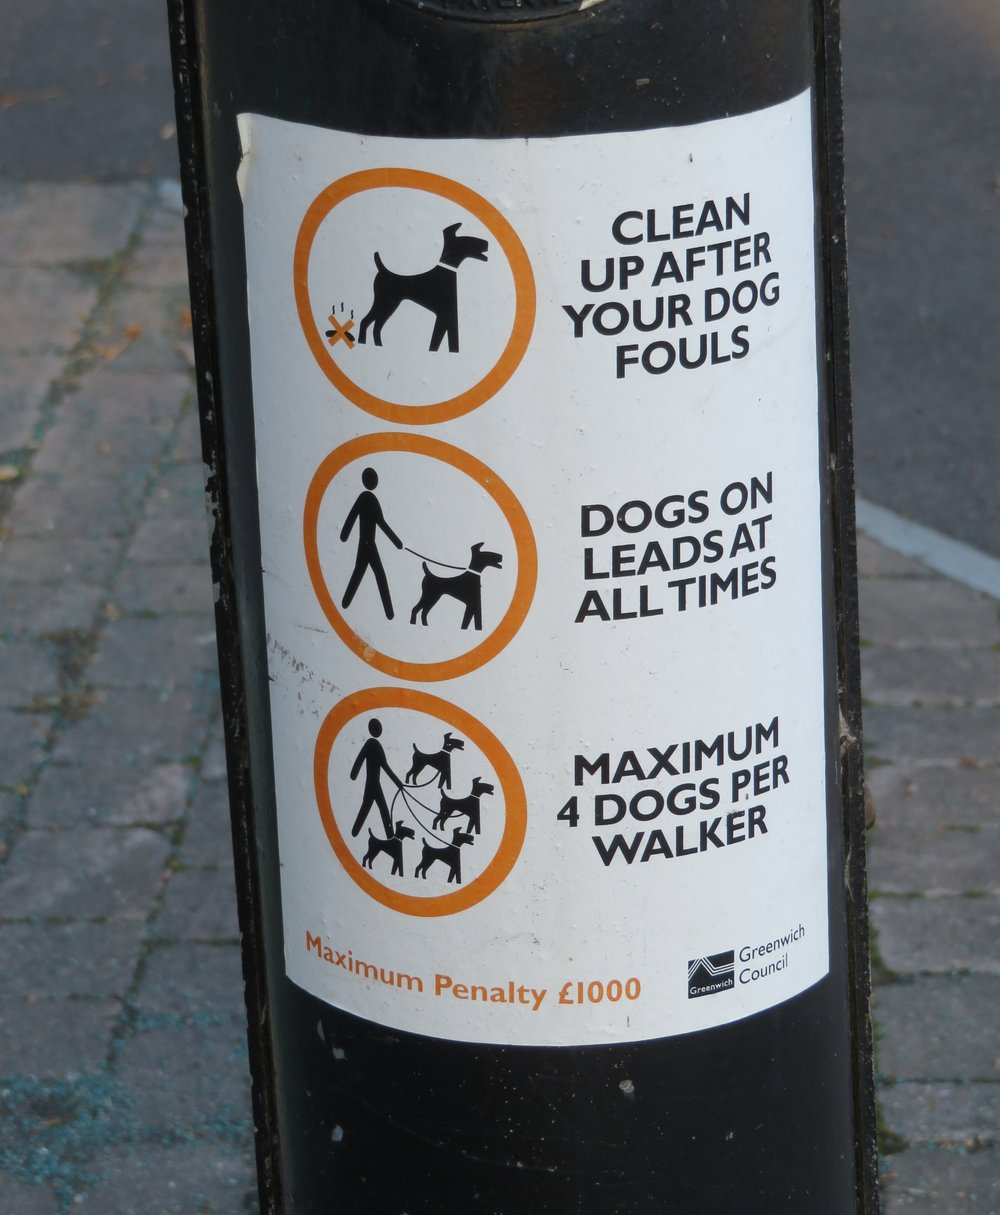 signs_dog rules.JPG